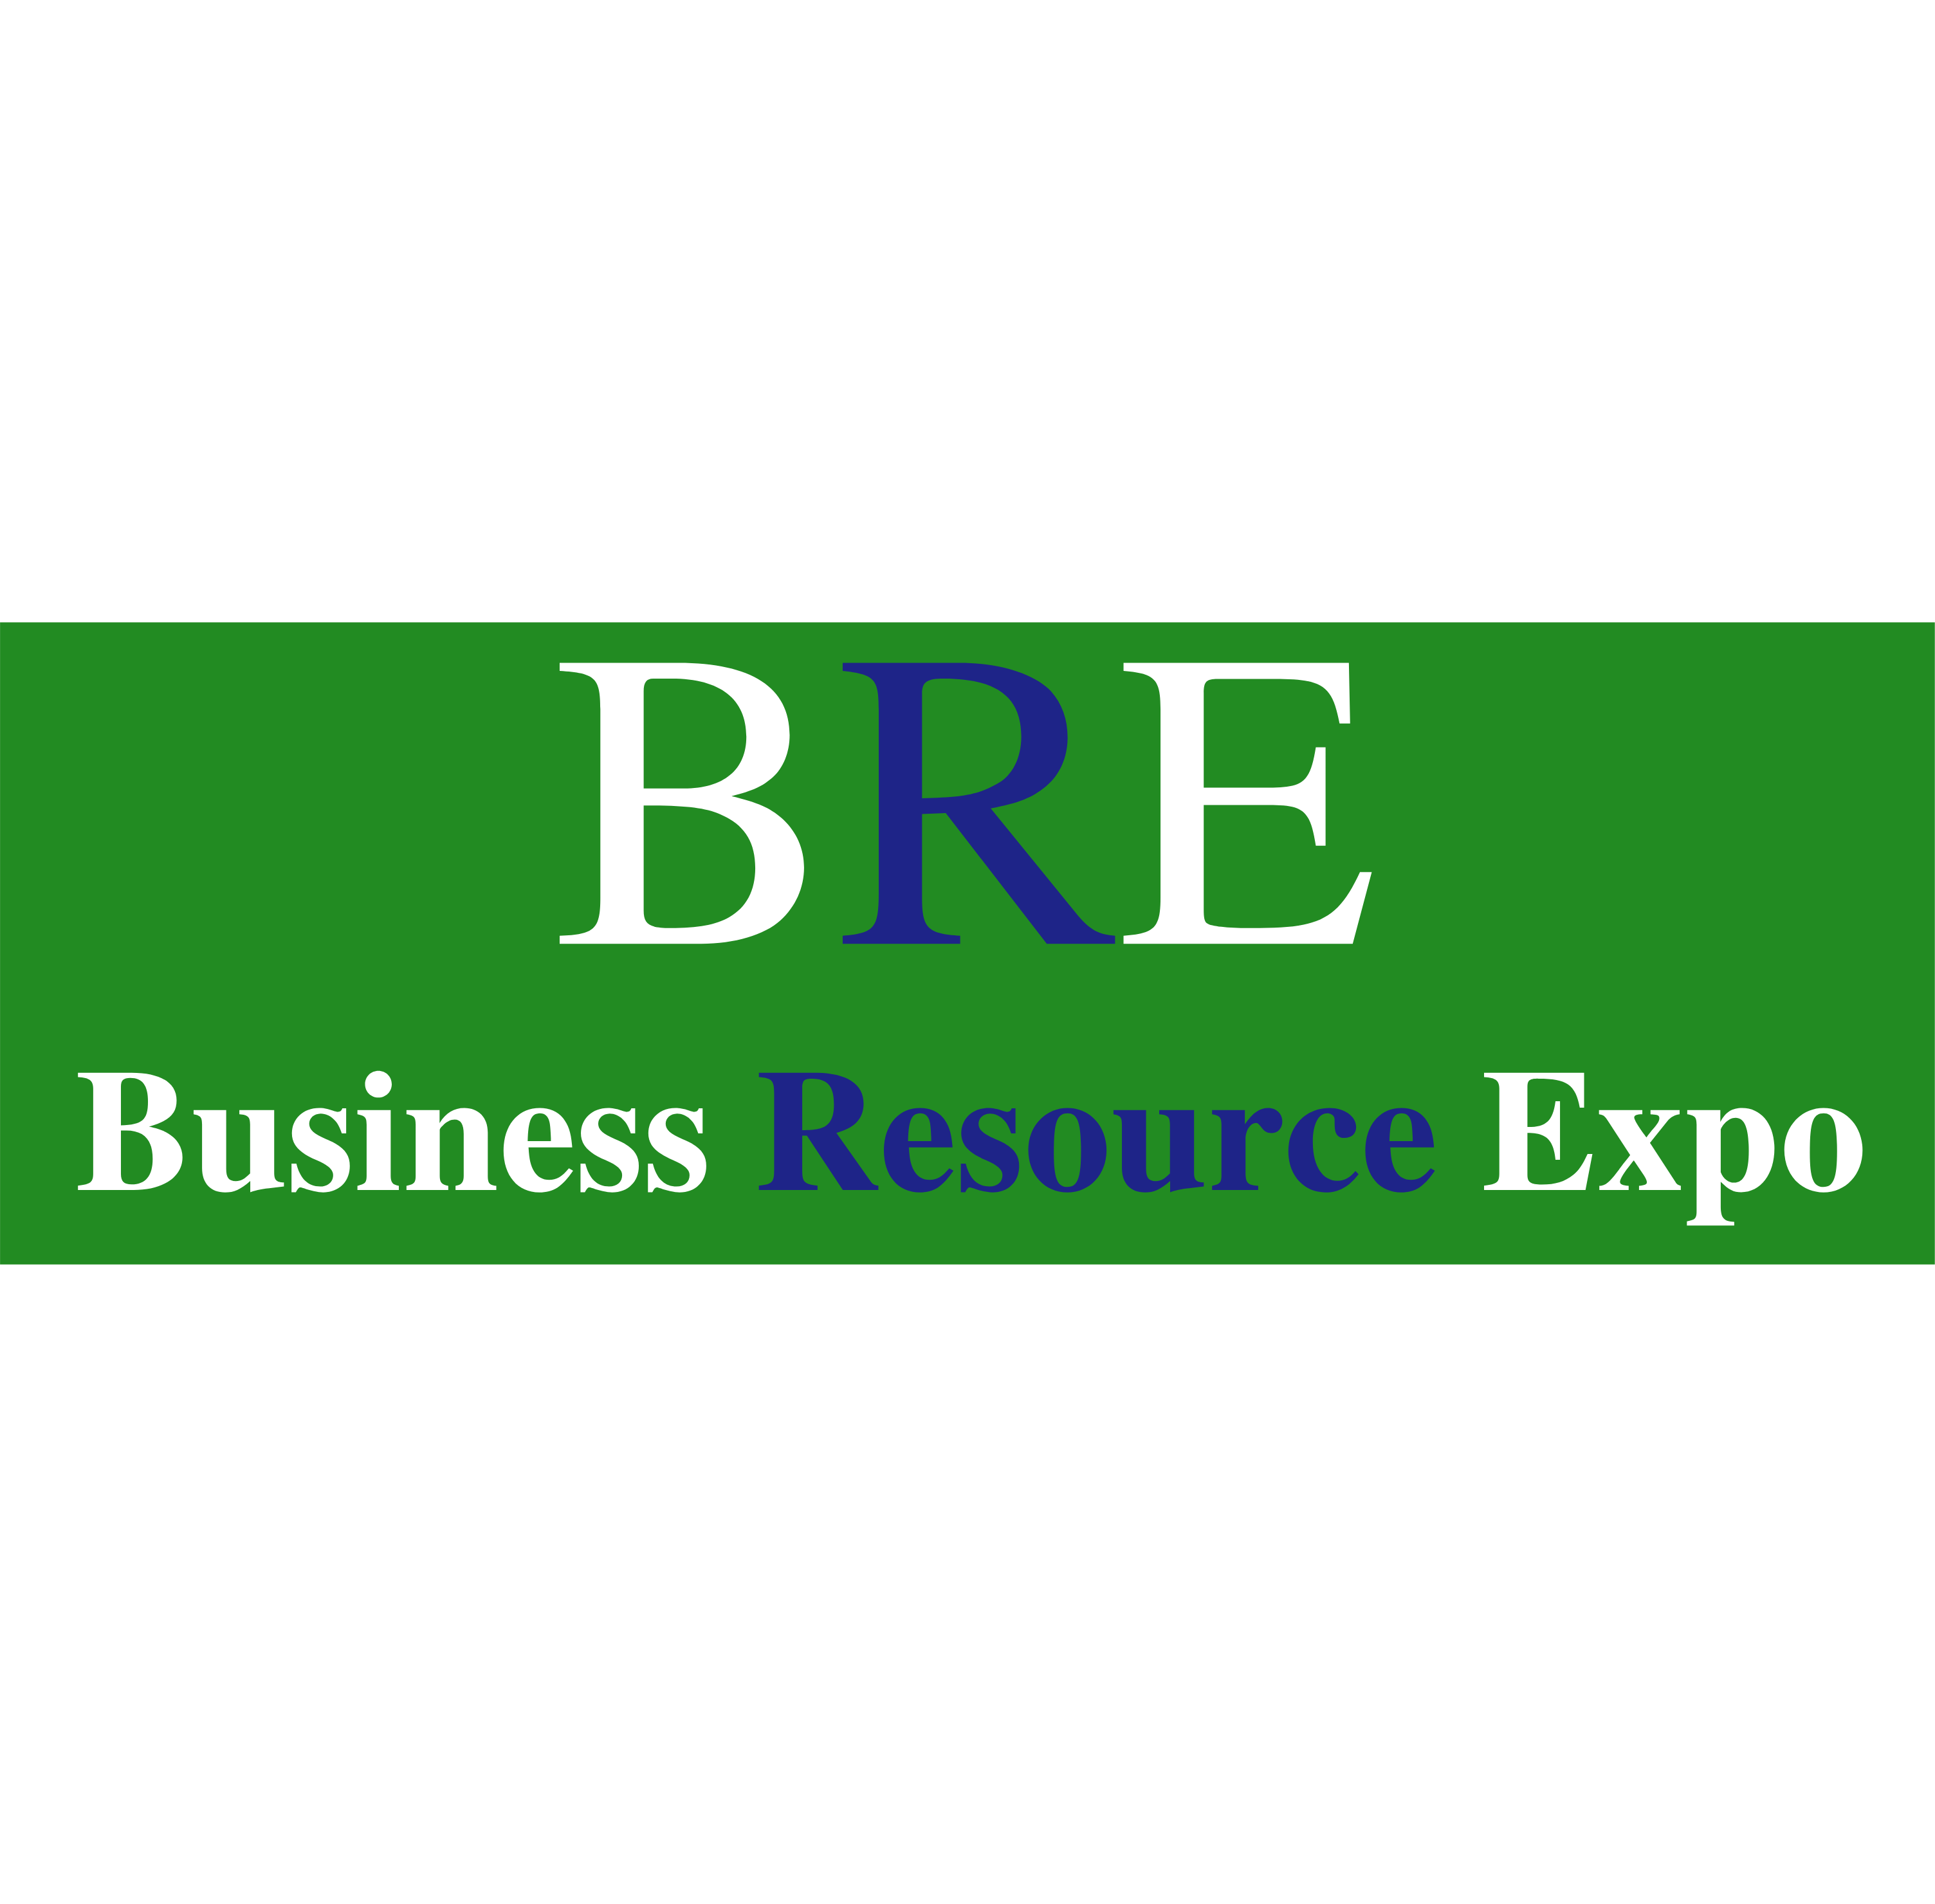 Business Resource Expo logo